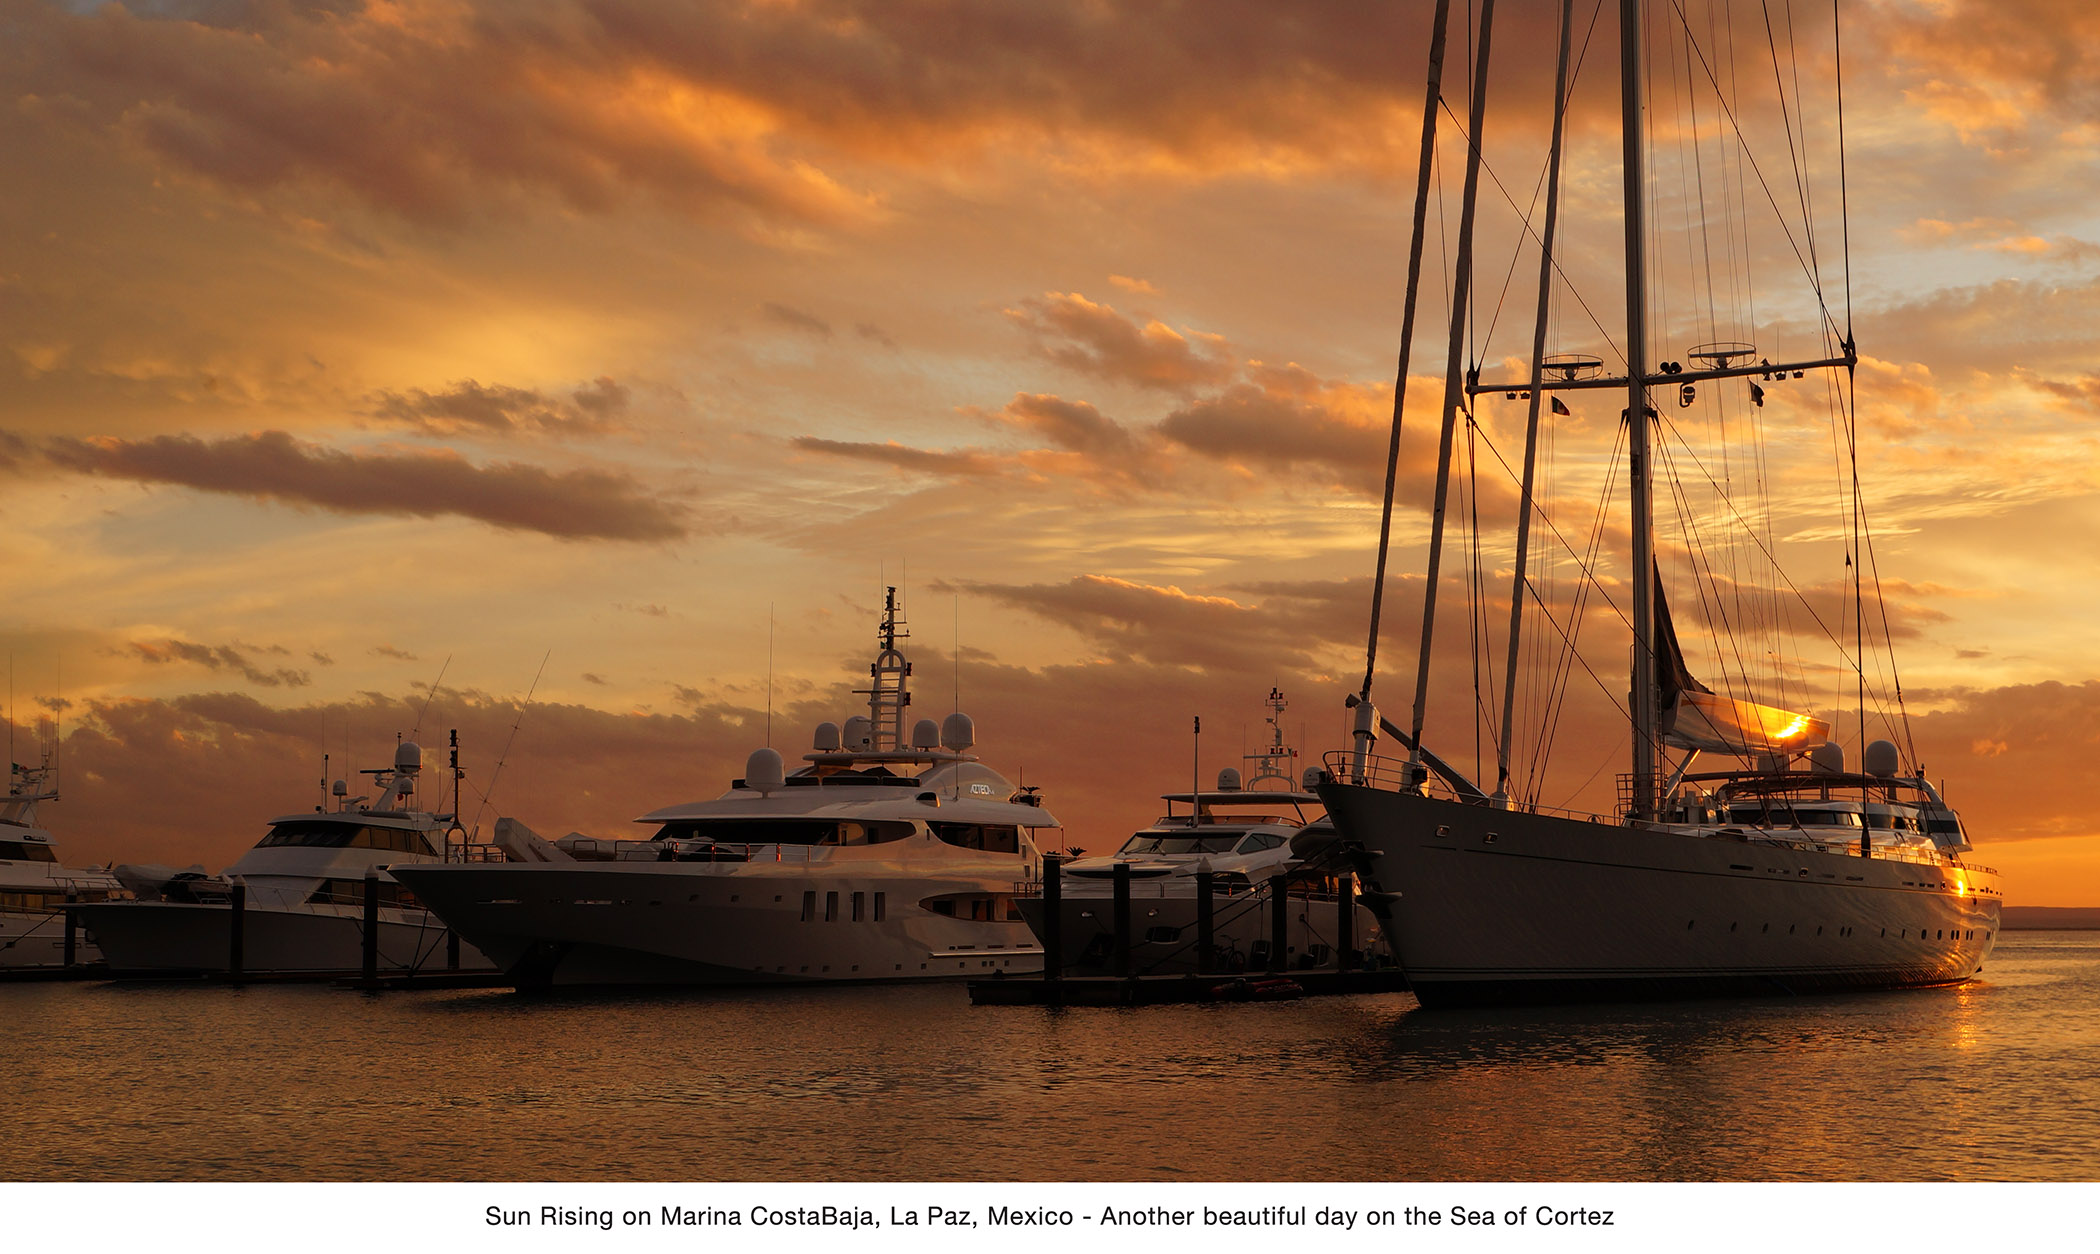 Bellingham Marine announces photo contest for photos of marinas